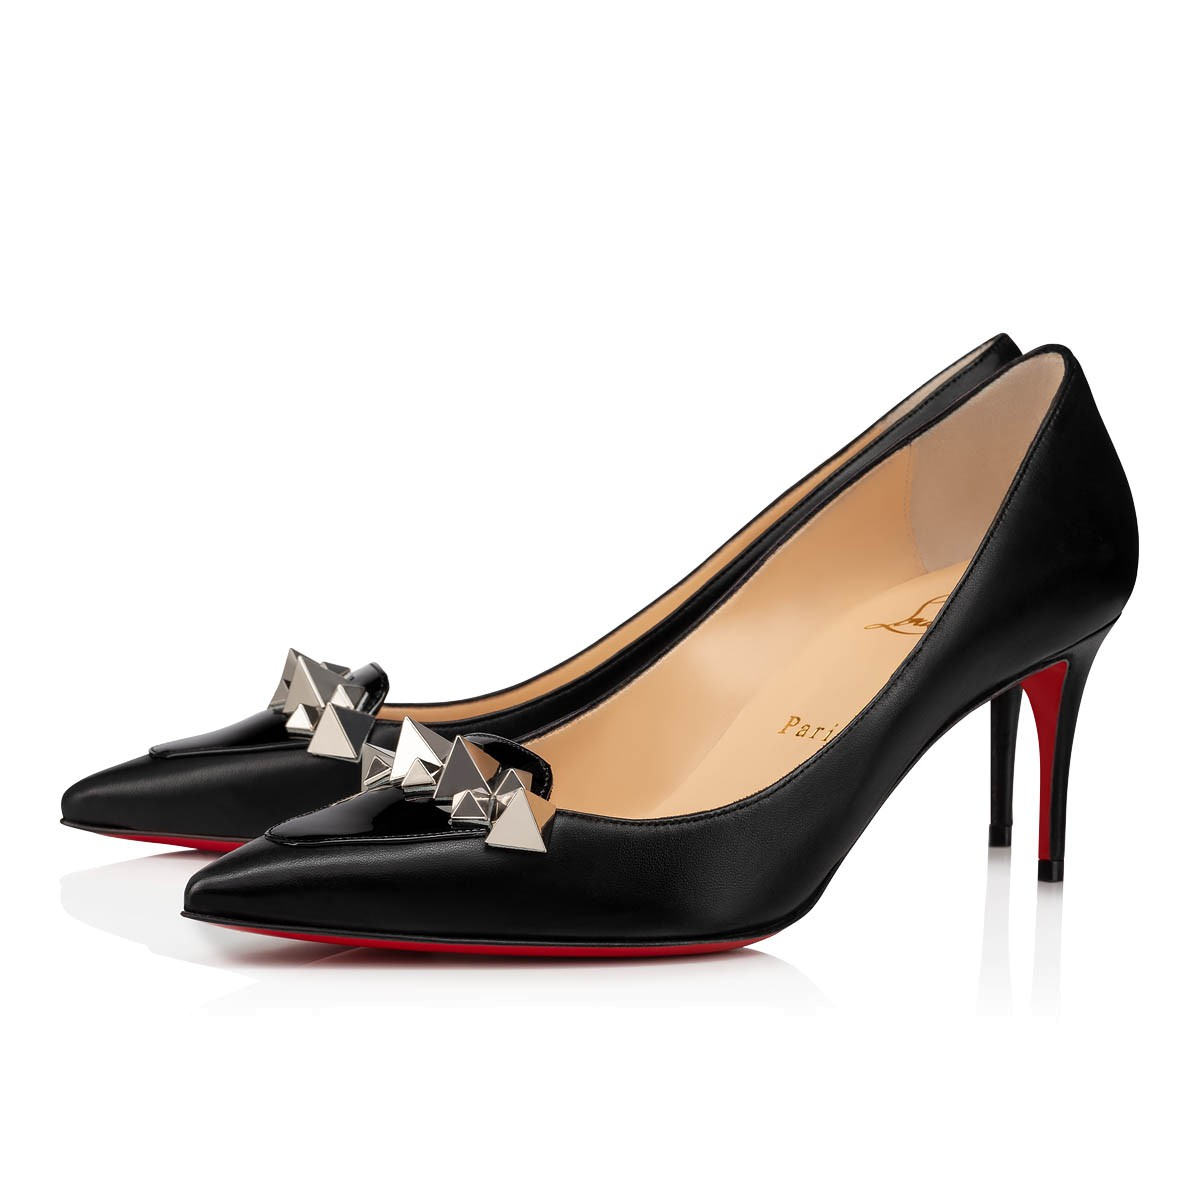 Shoes - Miss Constella - Christian Louboutin